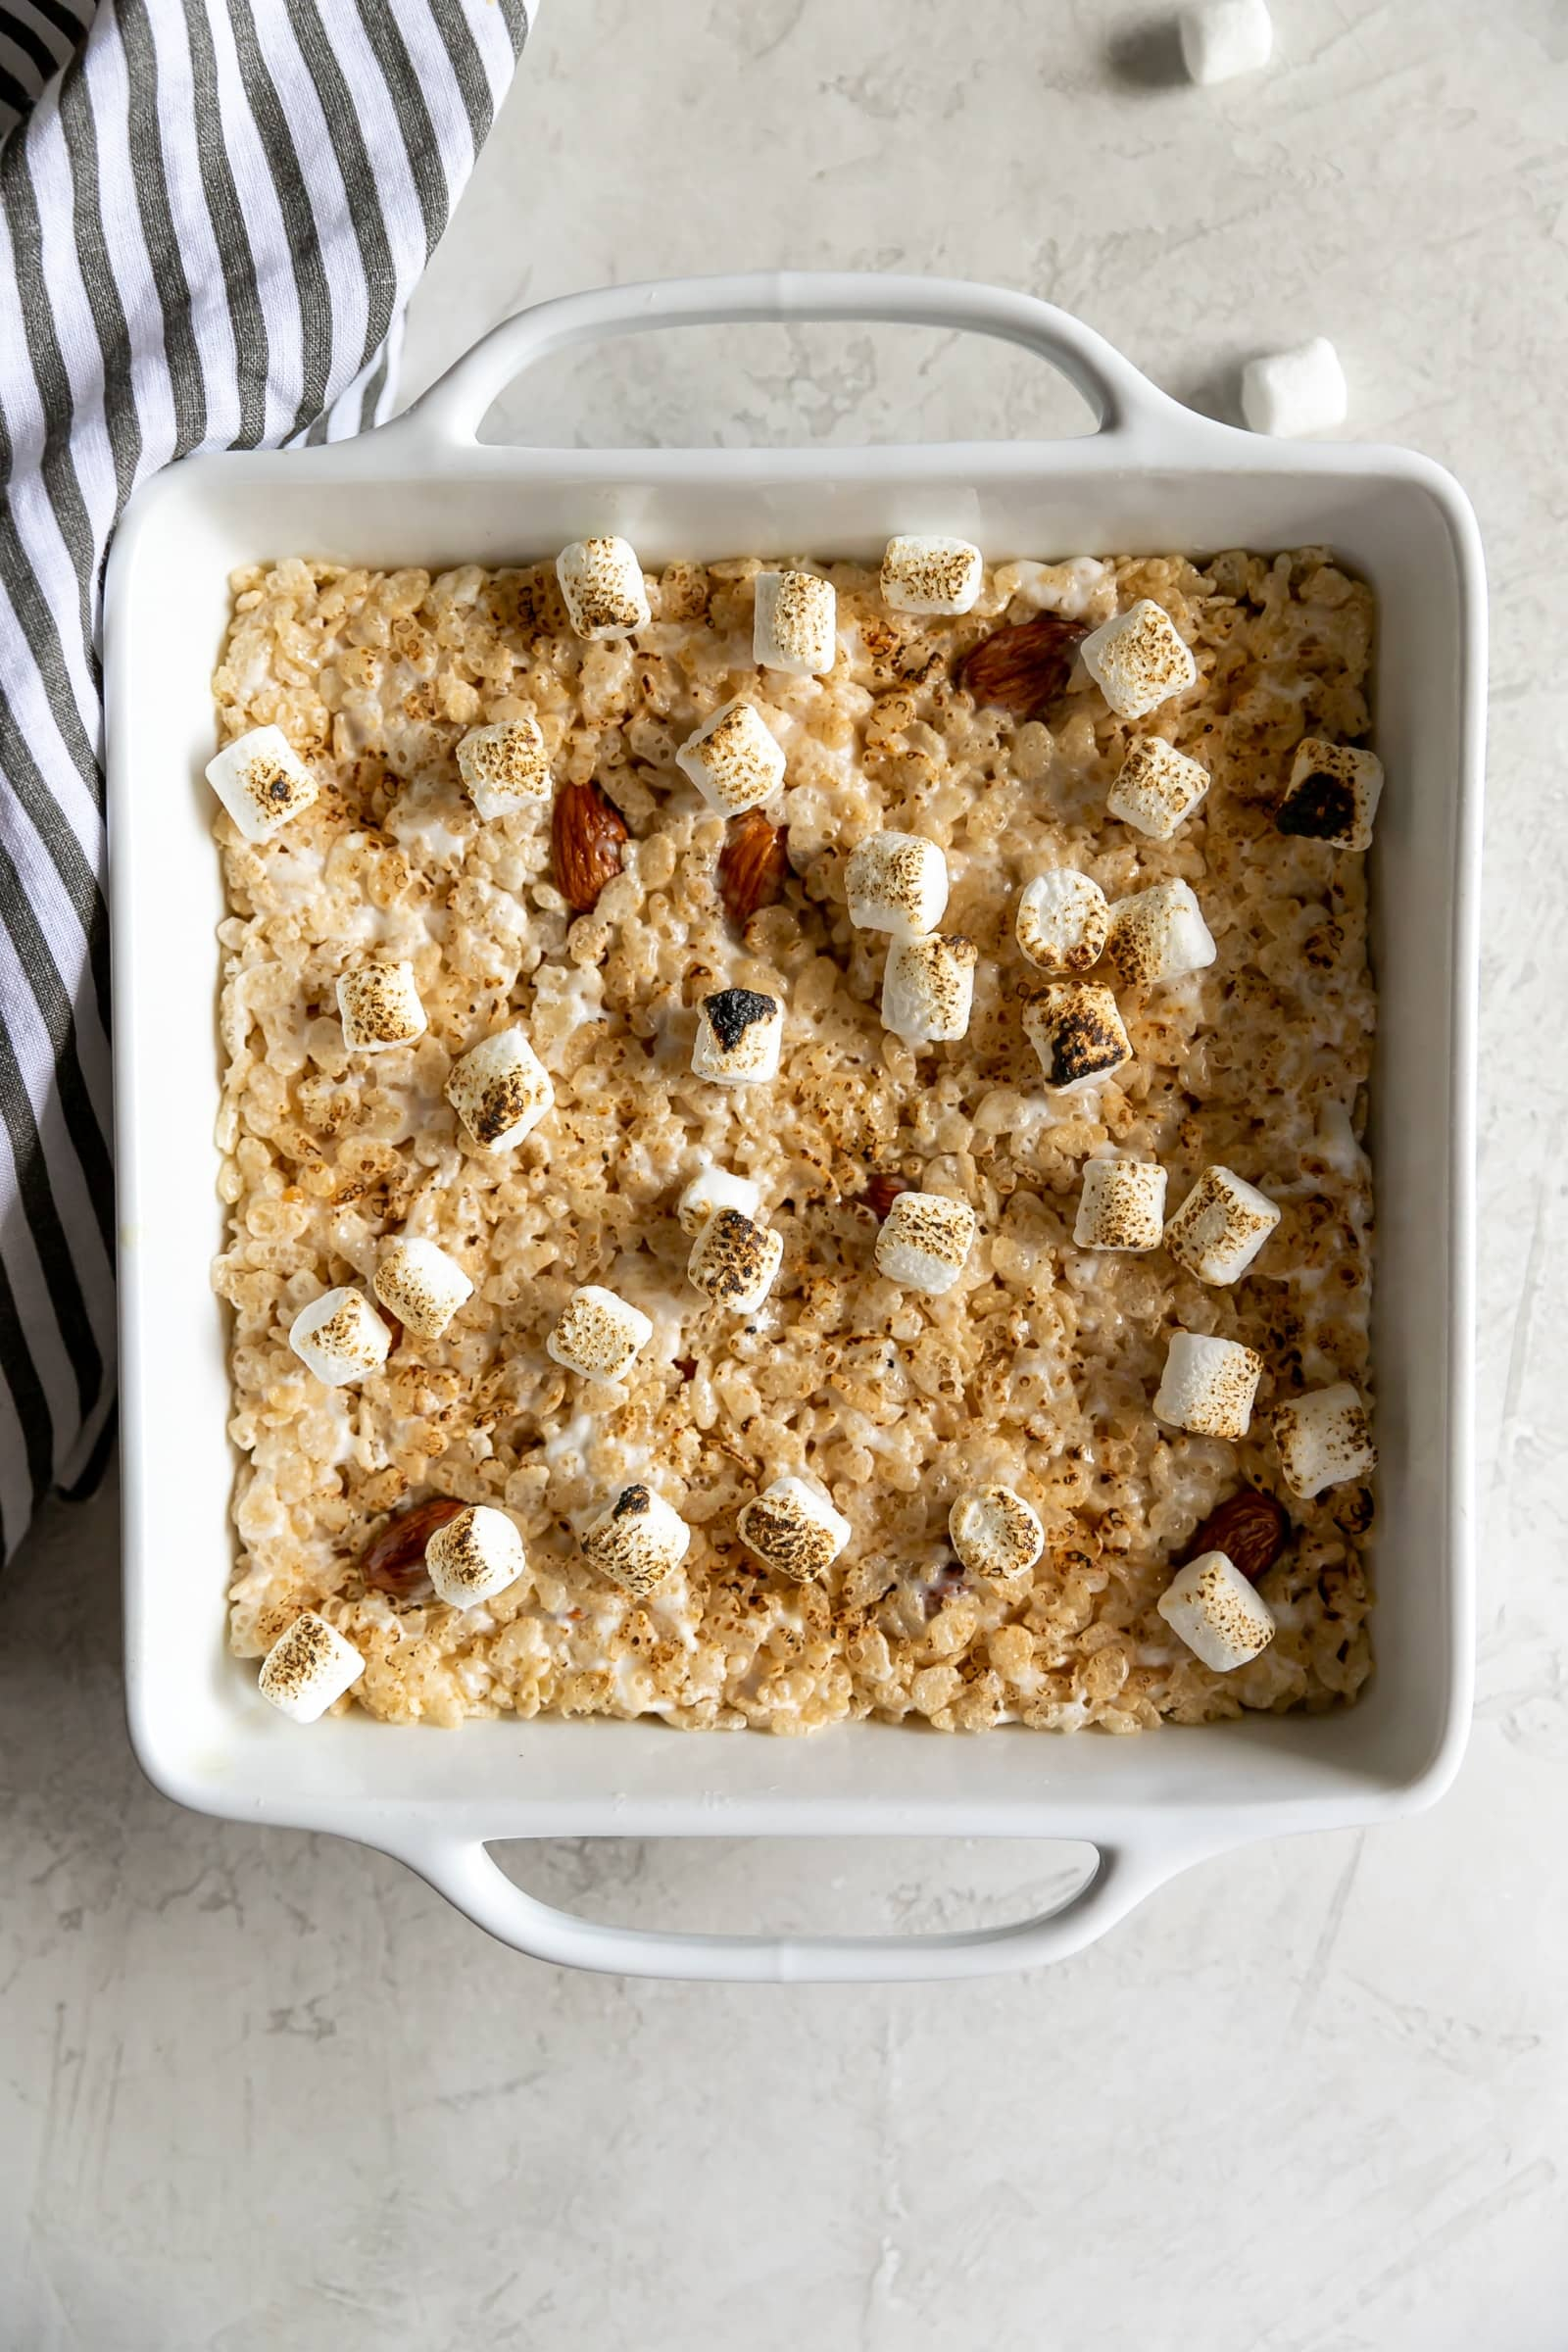 A sweet crispy classic treat with a smoky twist! Rice cereal, torched marshmallows, and smoked almonds come together to make Smoky Rice Krispie Treats.